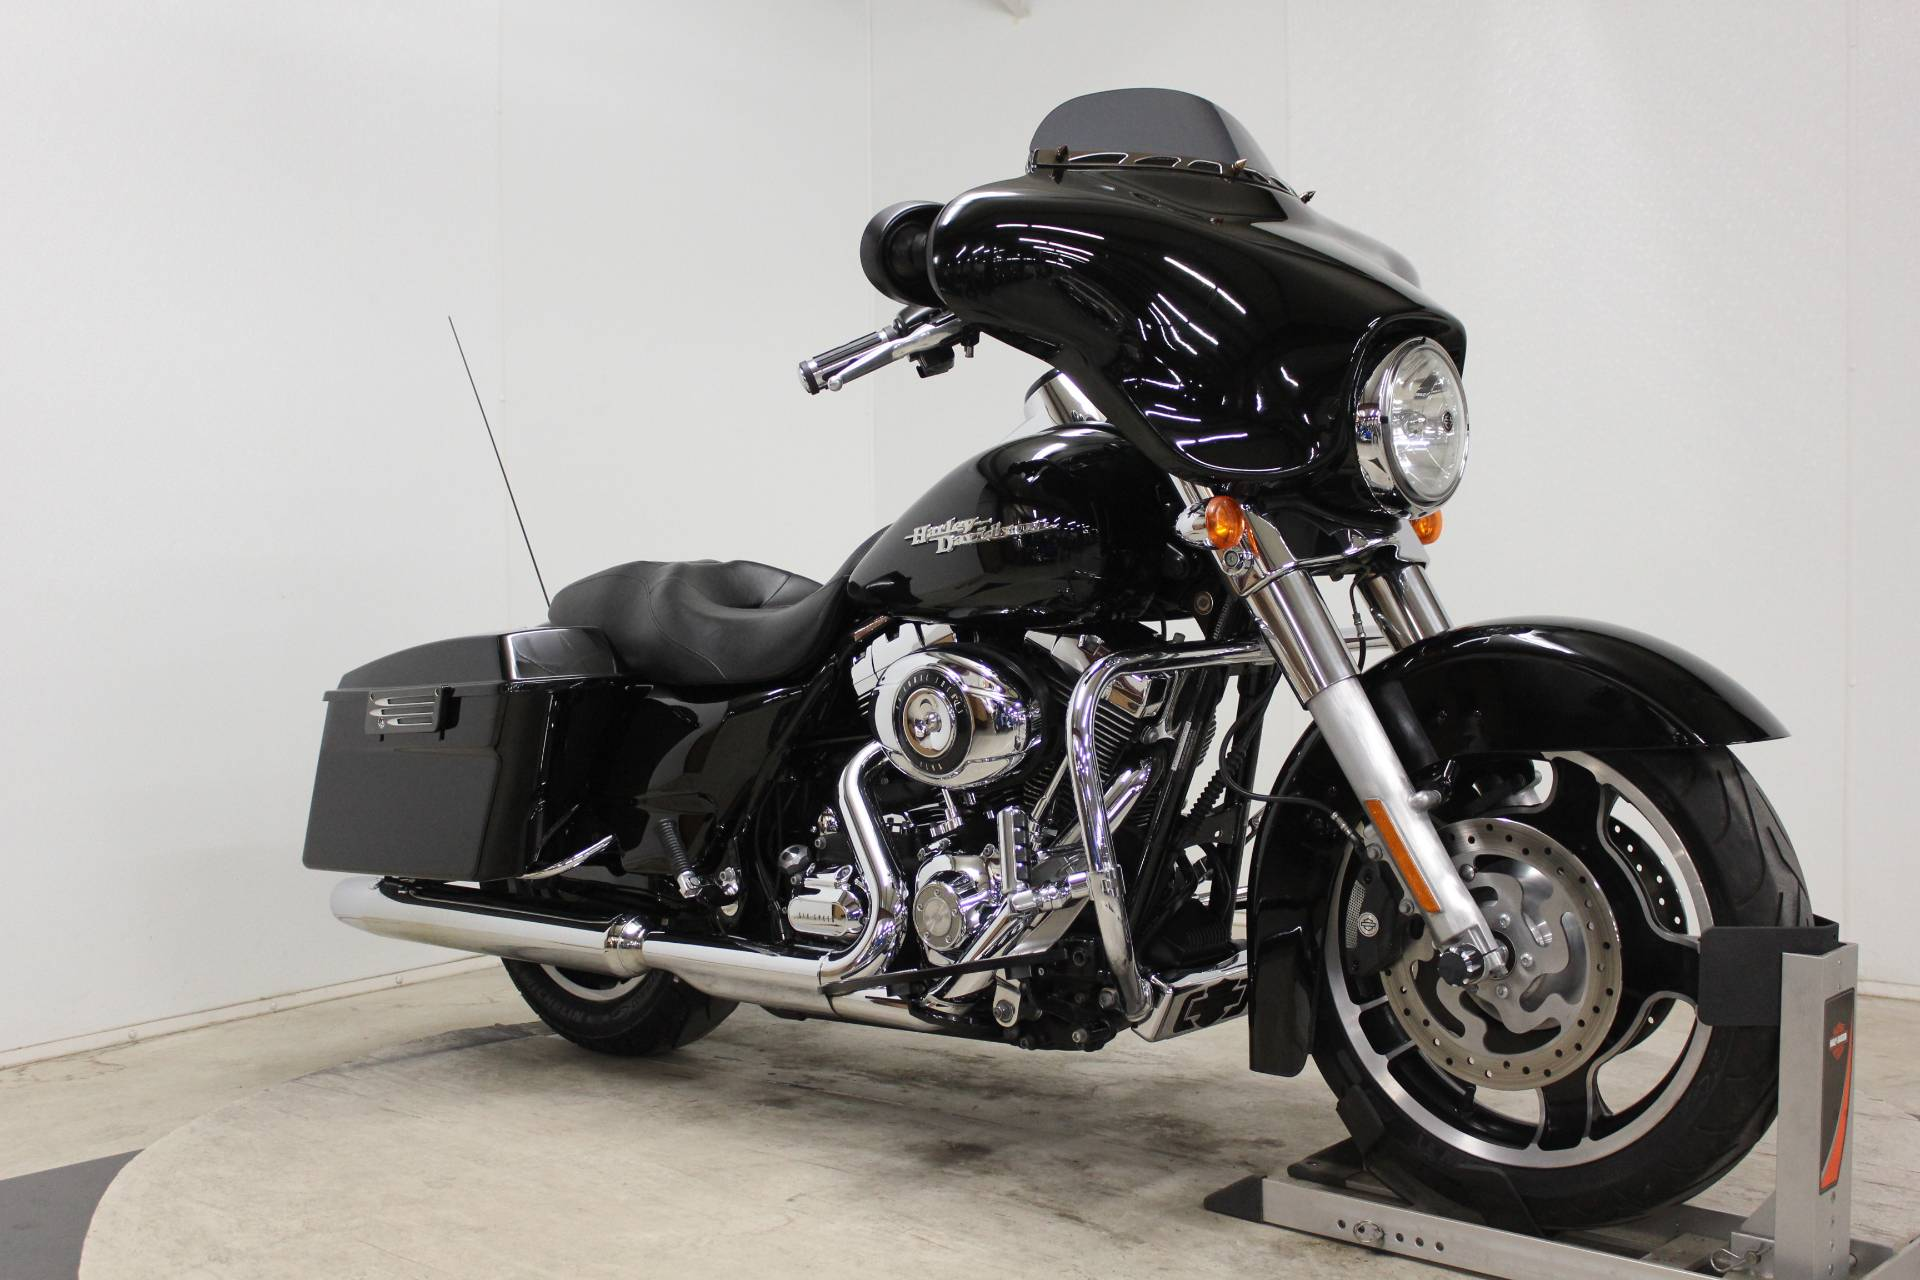 2010 Harley-Davidson Street Glide® in Pittsfield, Massachusetts - Photo 2